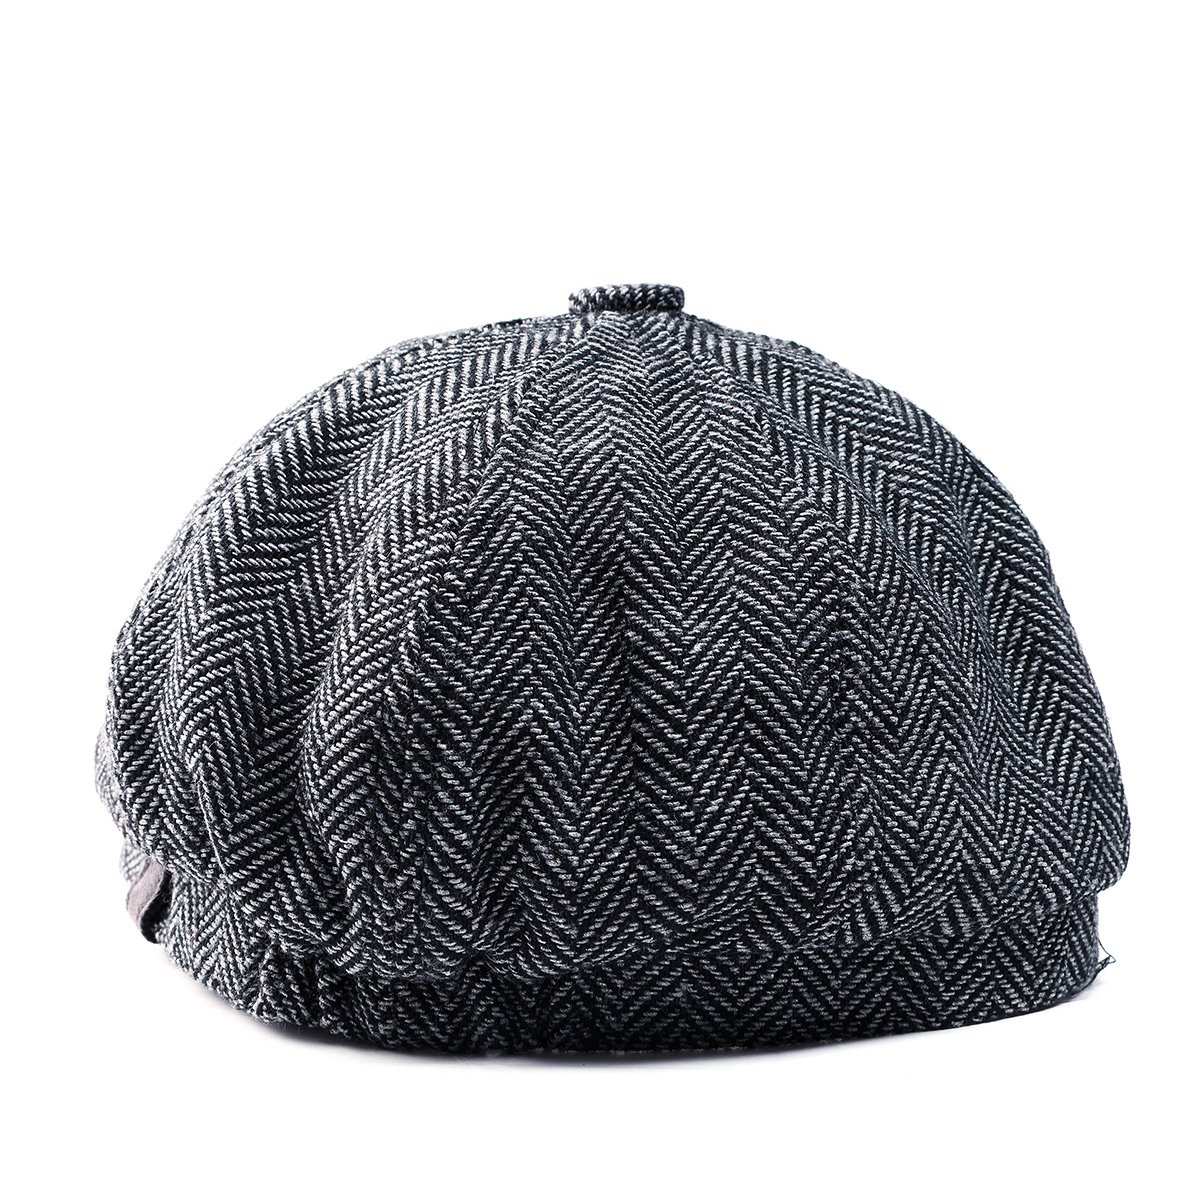 02cfe0f1 Amazon.com: GESDY Mens Vintage Newsboy Ivy Cap Flat Octagonal Golf Driving  Hat Beret Cabbie Gatsby (Gray): Toys & Games